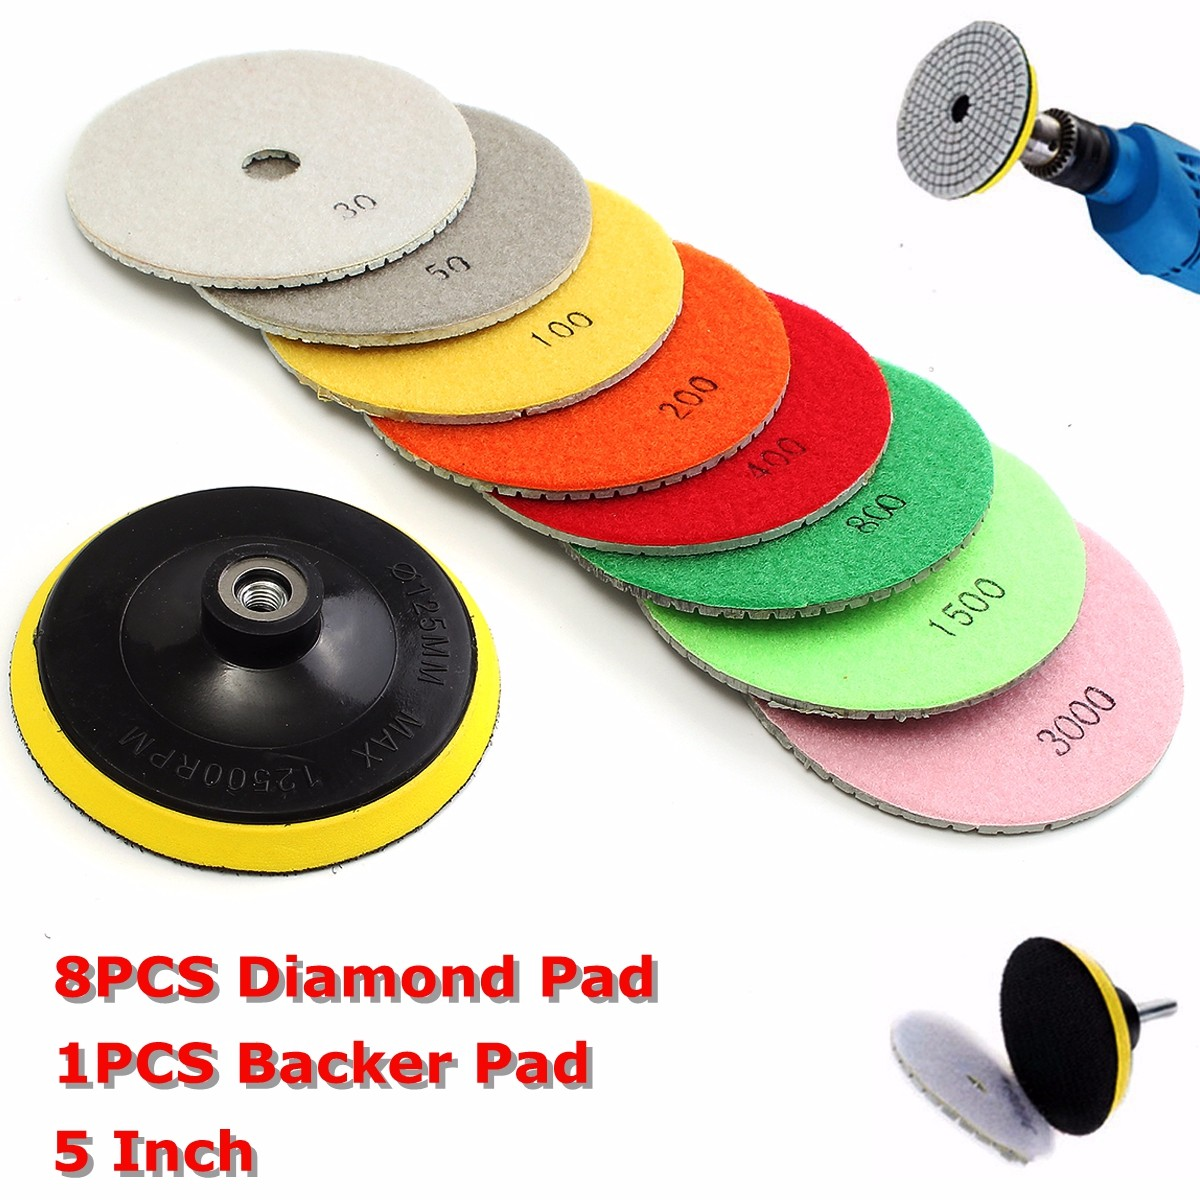 9pcs/set 5 Inch Diamond Polishing Pad Set Wet Dry for Granite Concrete Marble Stone Tiles Diamond Polishing Pad Backer Pad цена